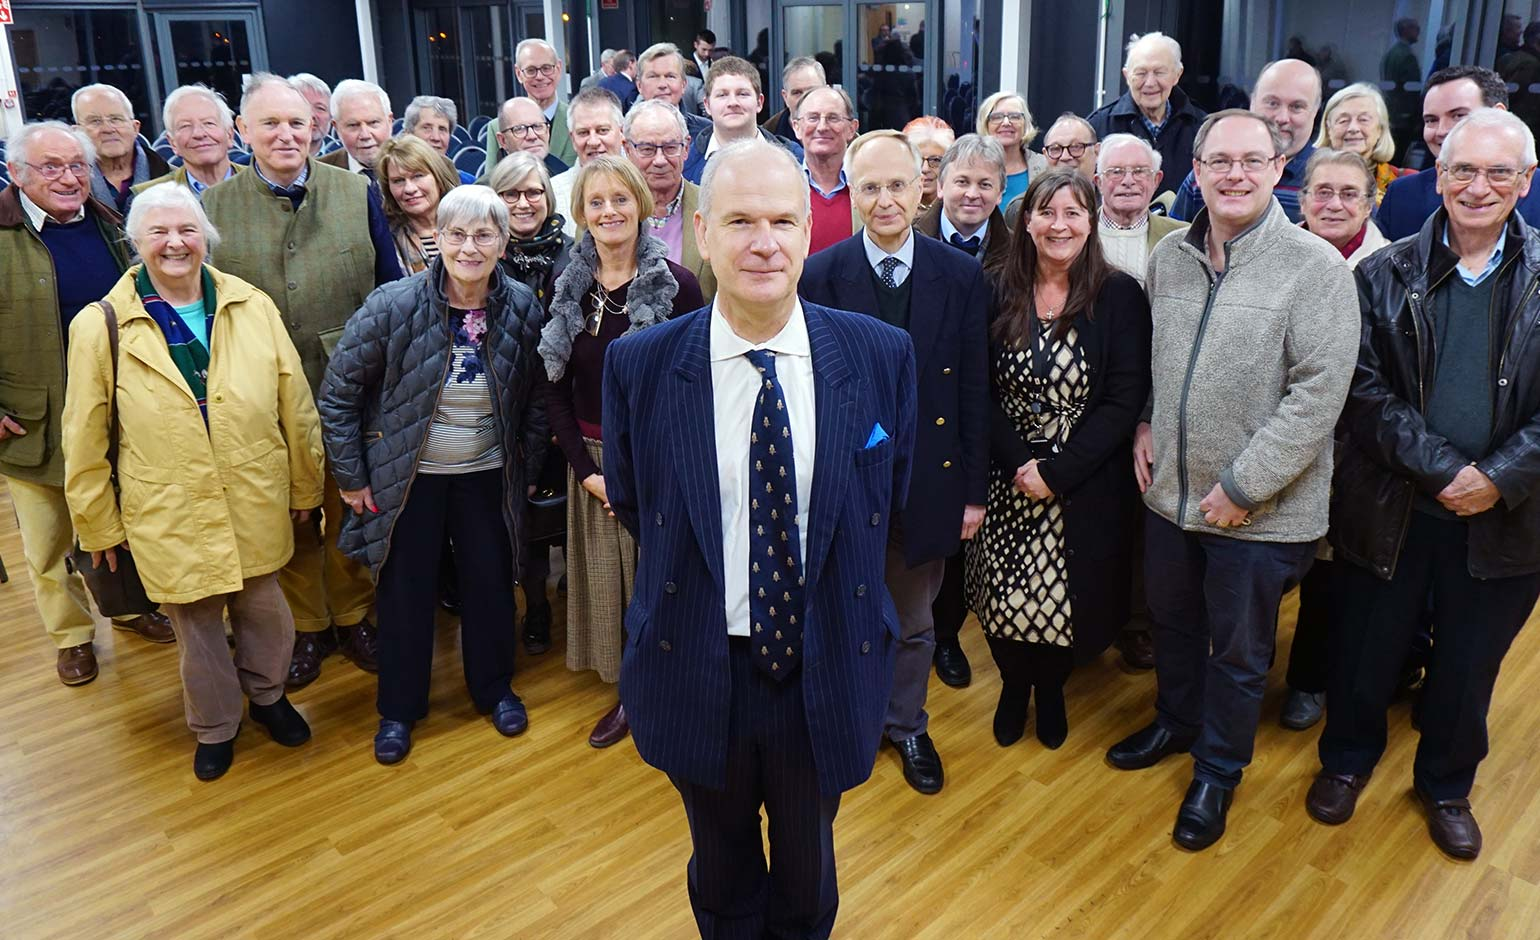 Councillor chosen as Conservative PCC candidate for Avon and Somerset